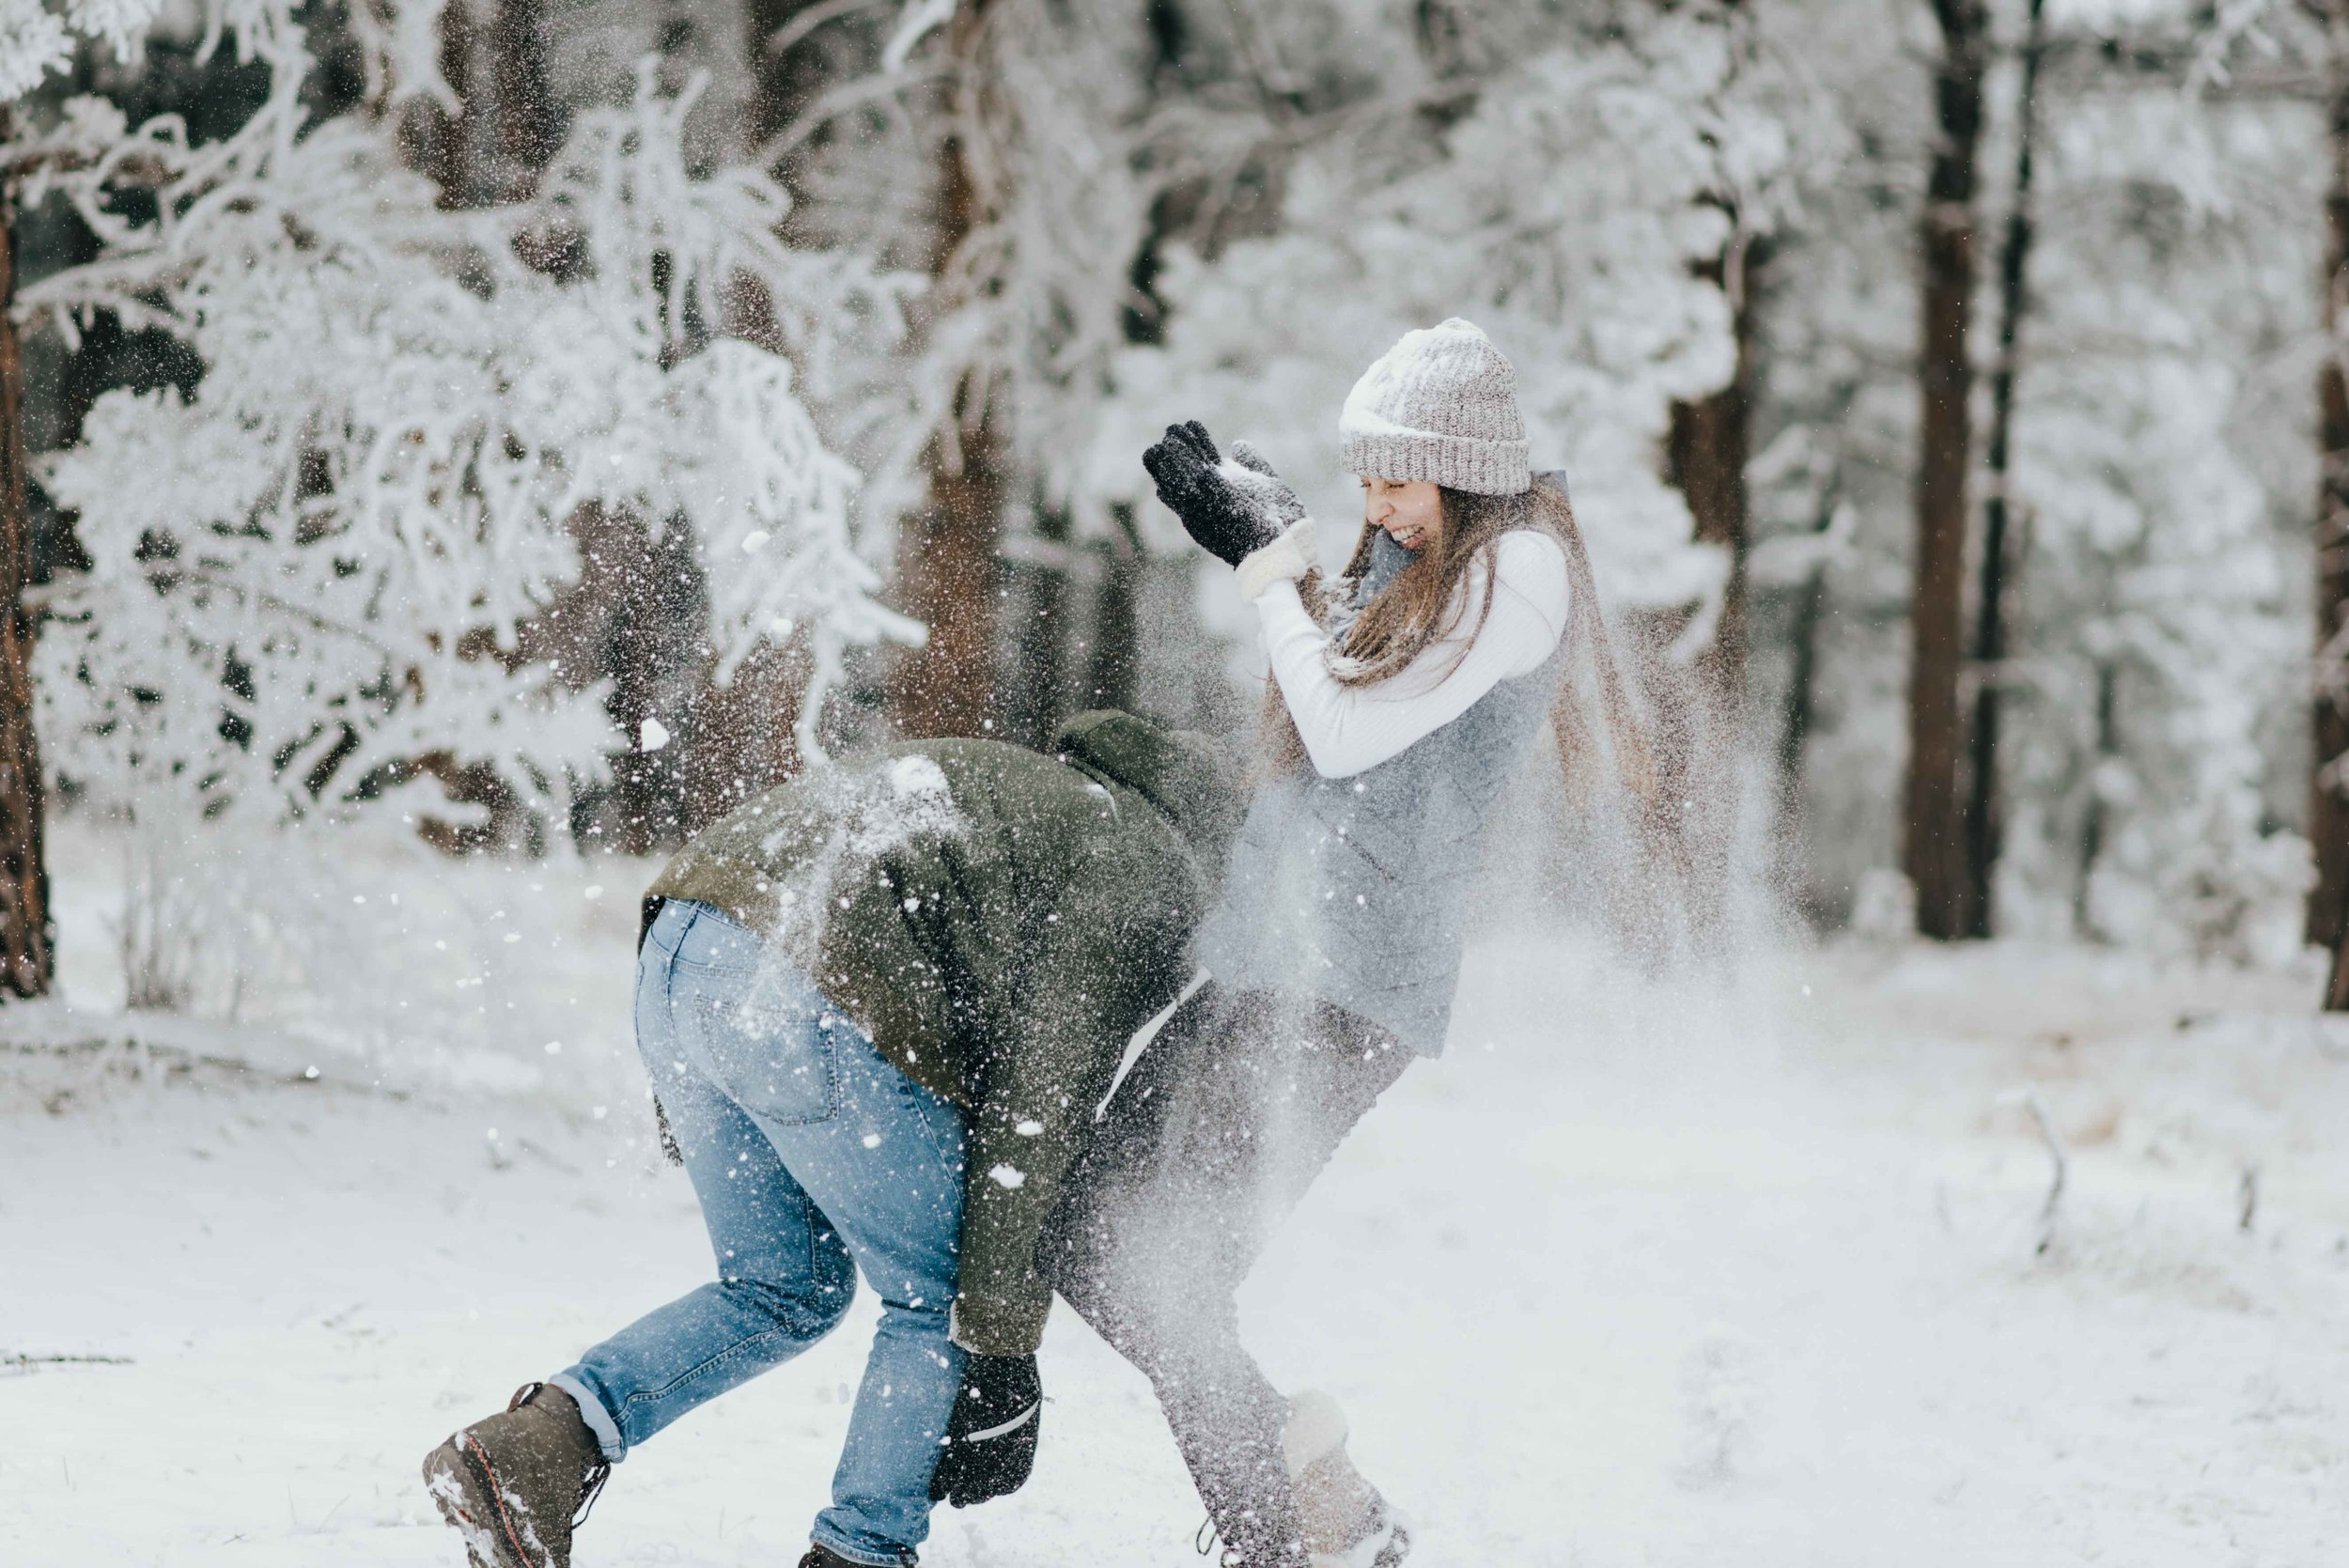 Nik and Tano during their snowy mountain engagement session in Golden, Colorado.